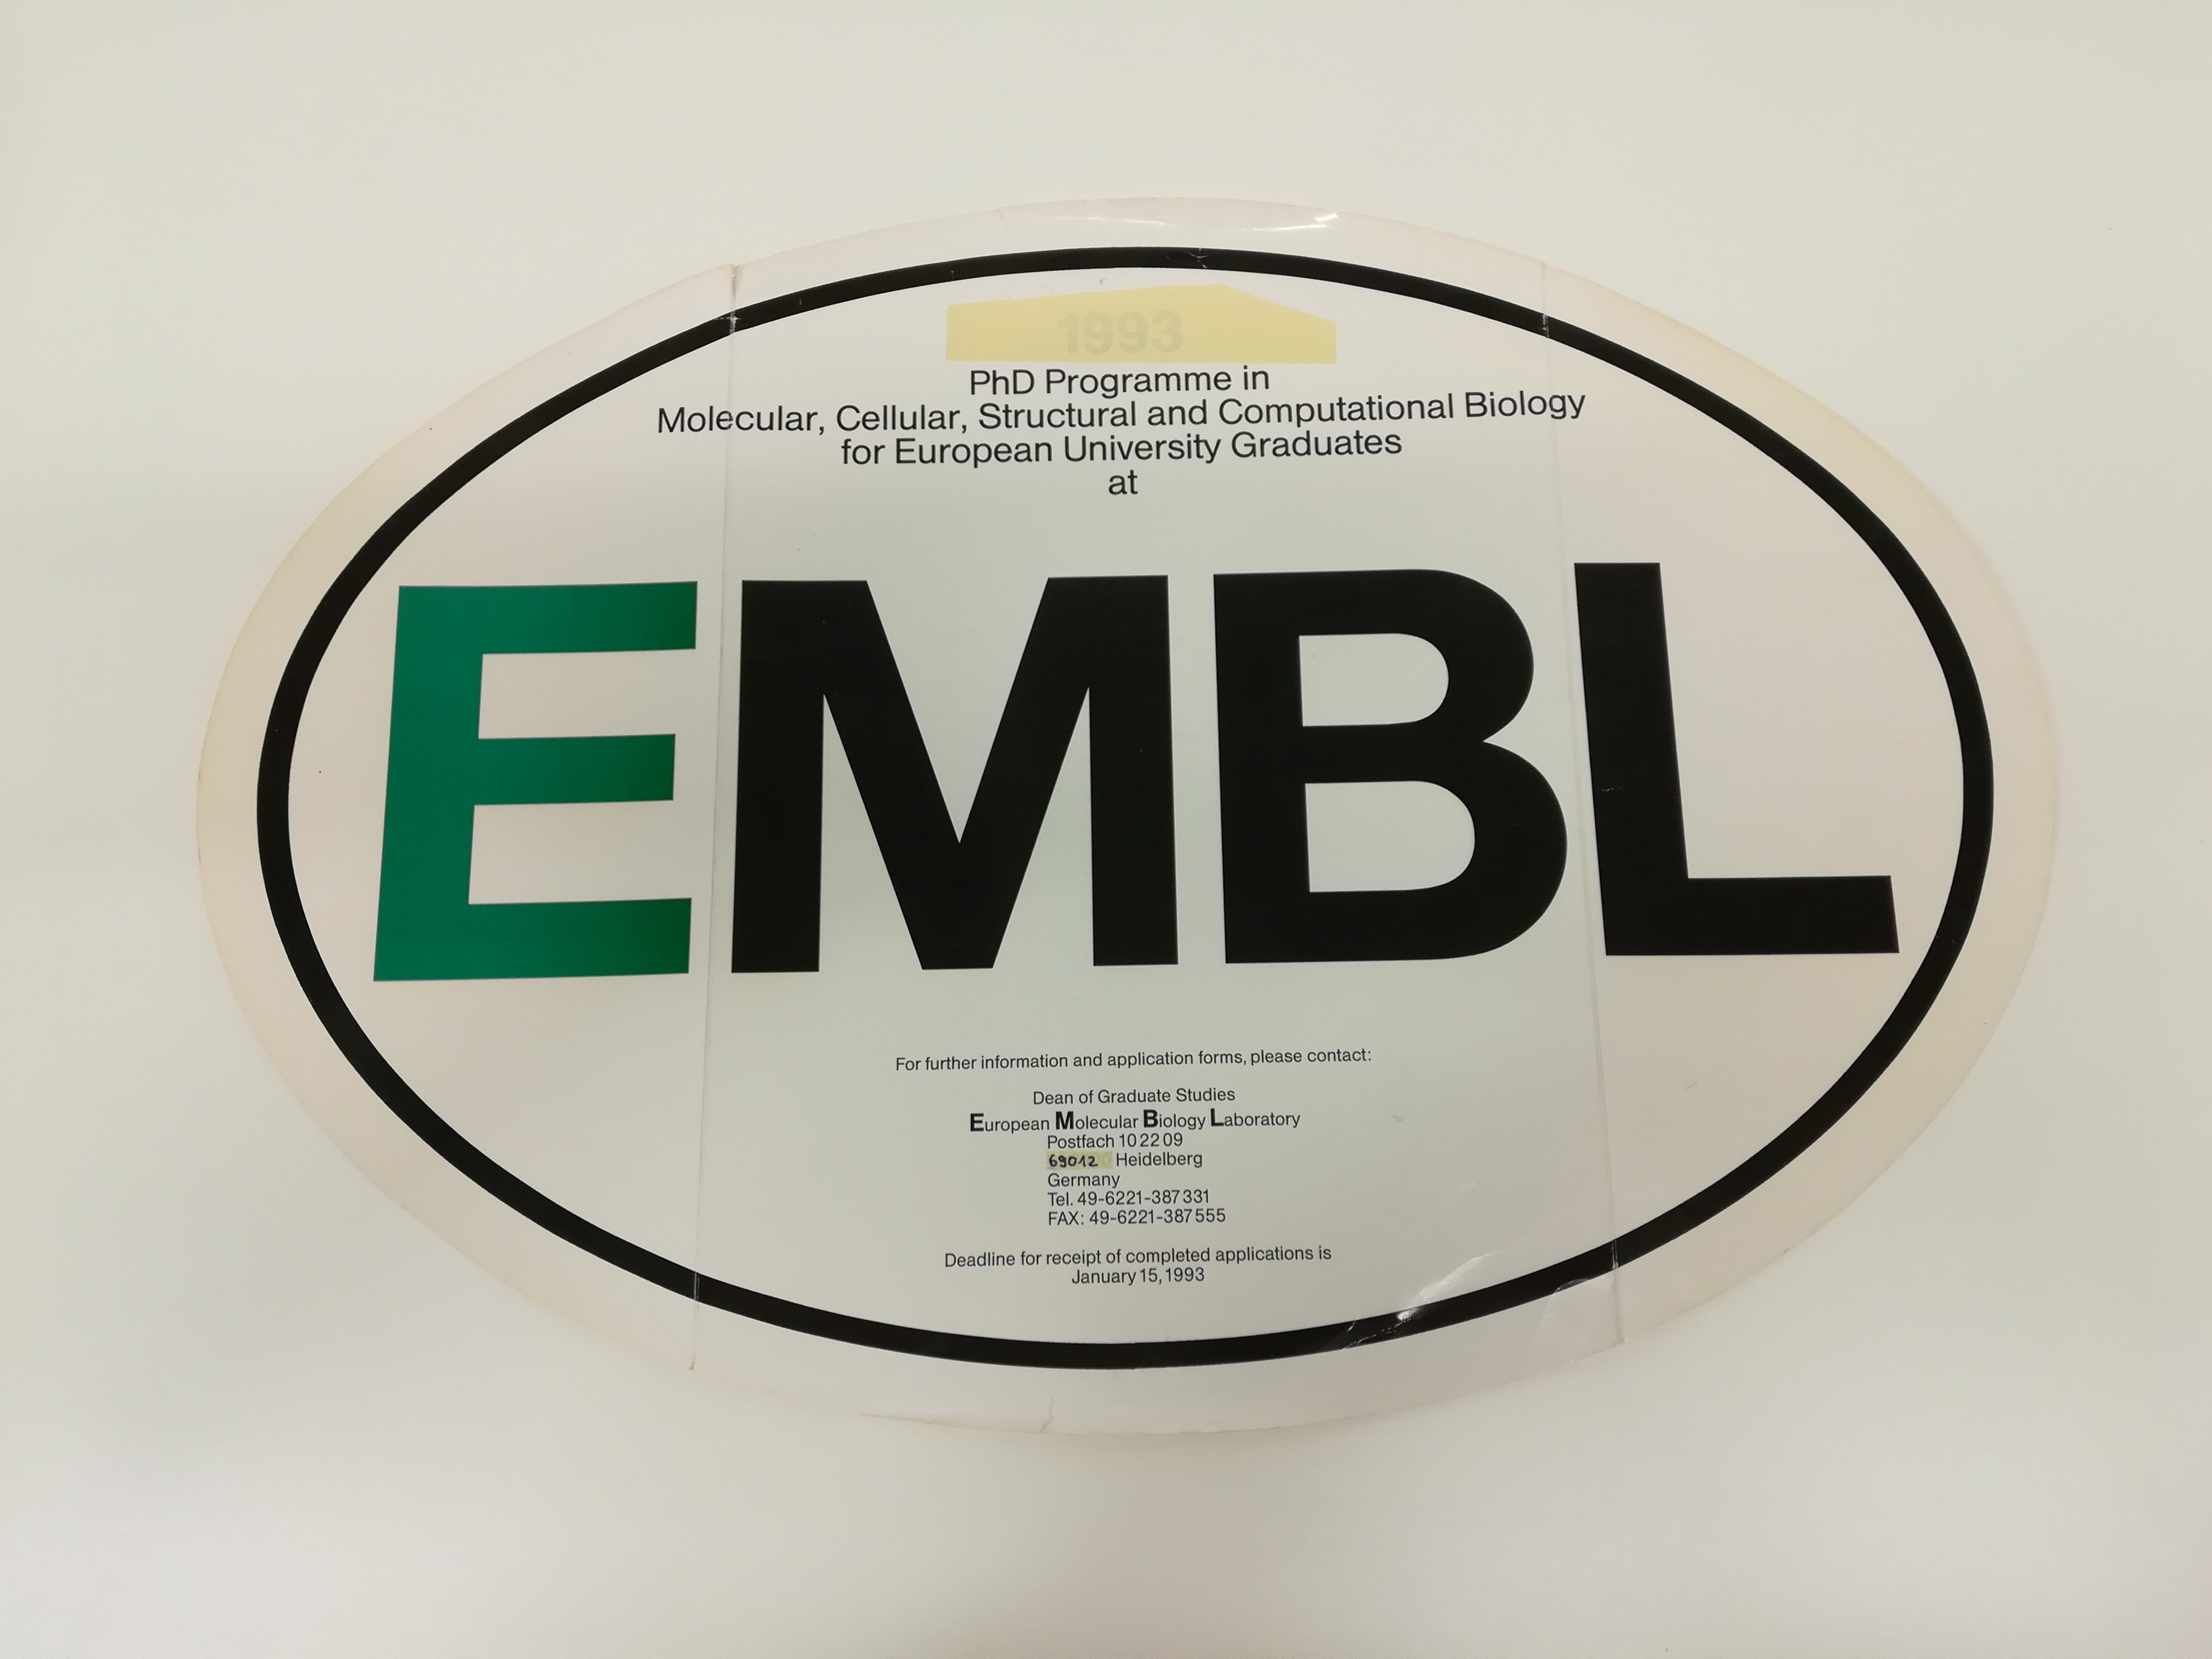 an oval sticker with the letters E M B L in the centre